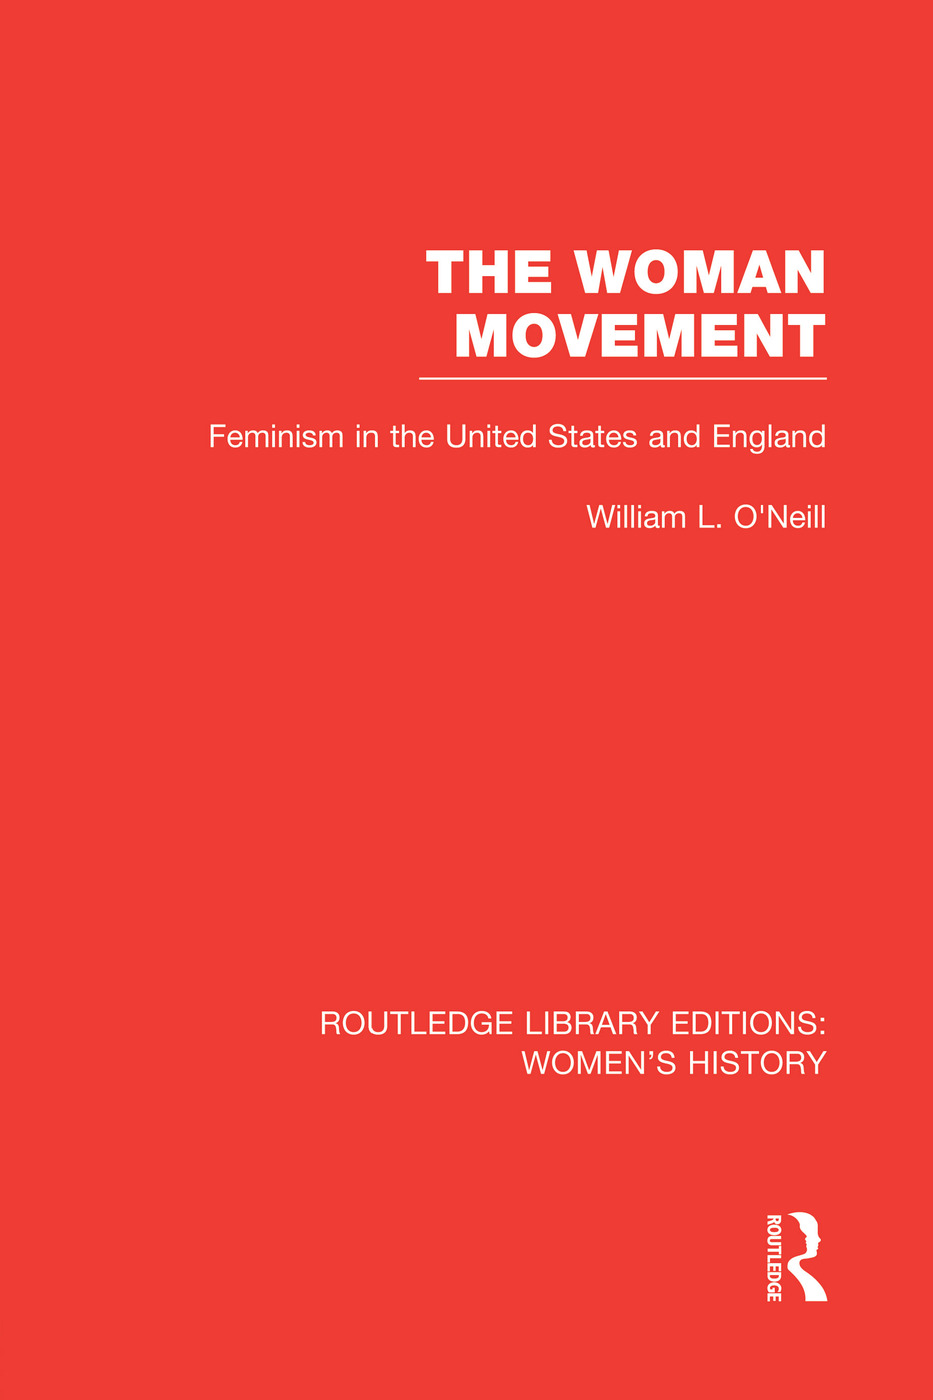 The Woman Movement: Feminism in the United States and England book cover